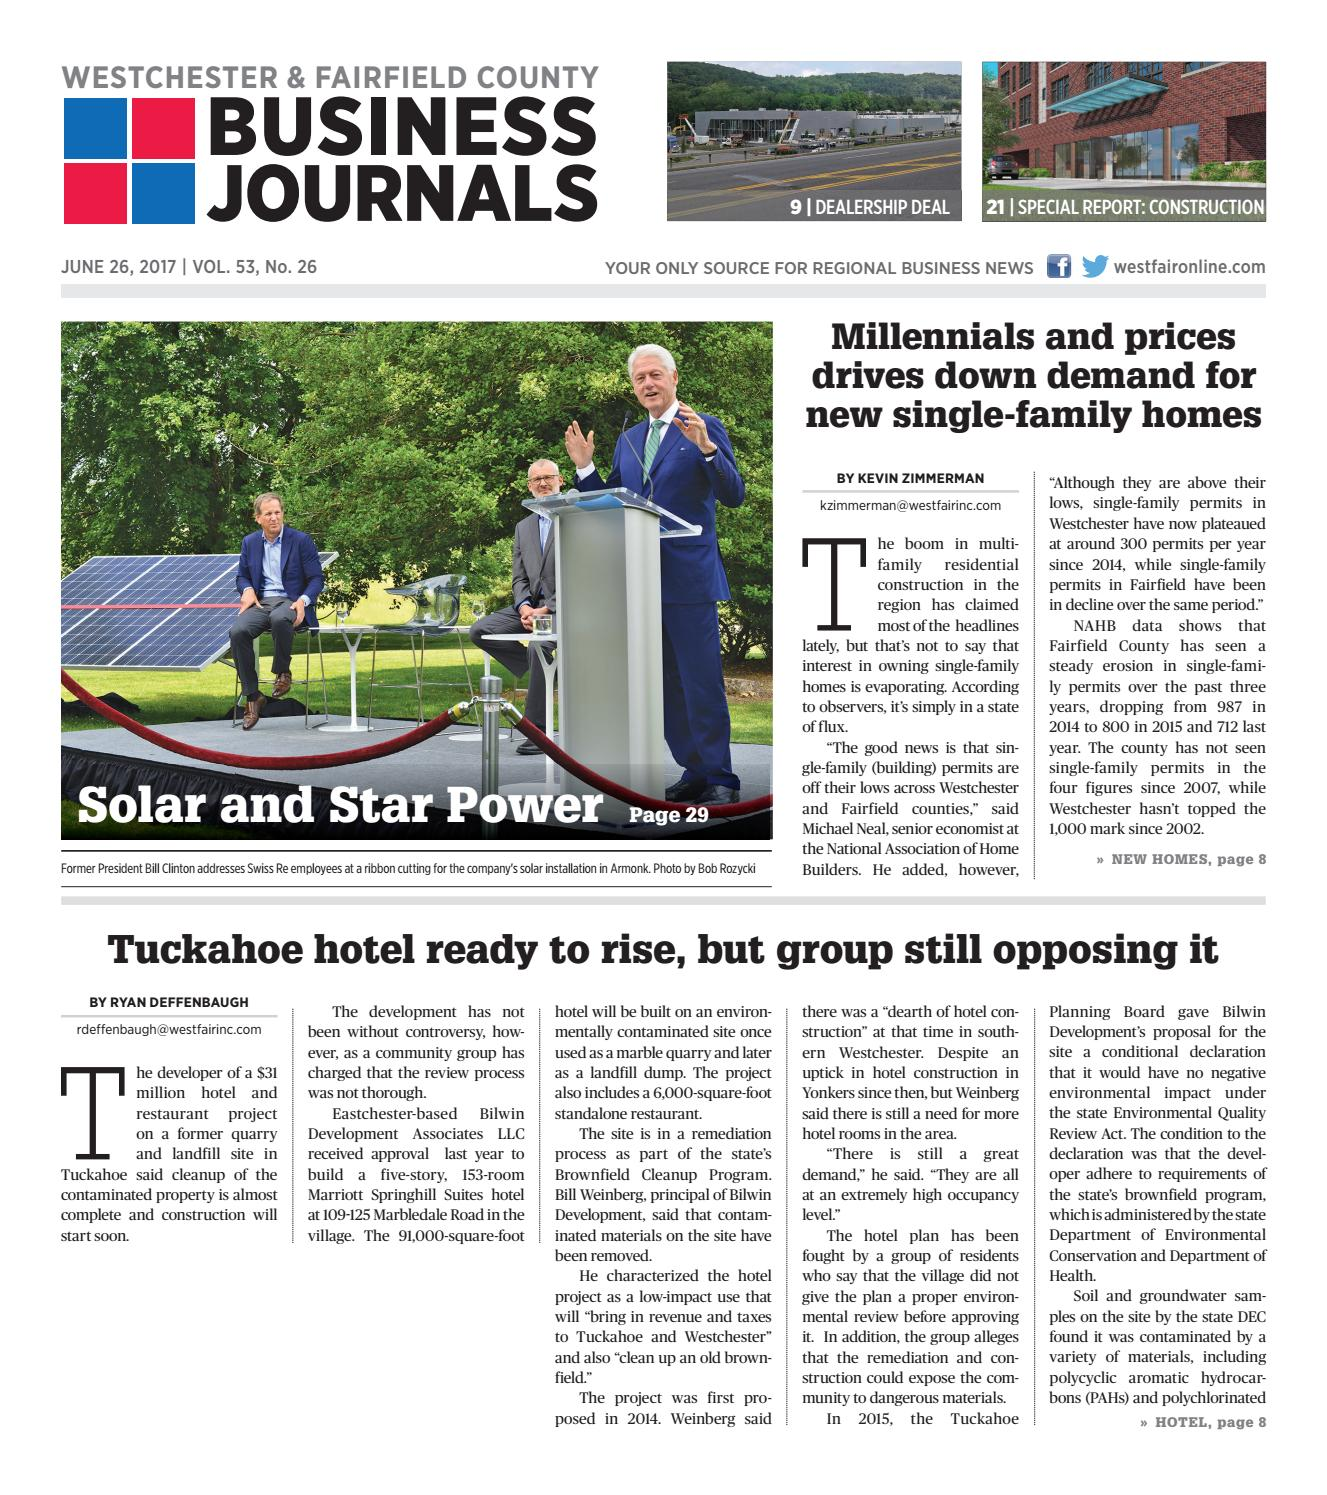 Westchester and fairfield county business journals combined 062617 by wag magazine issuu